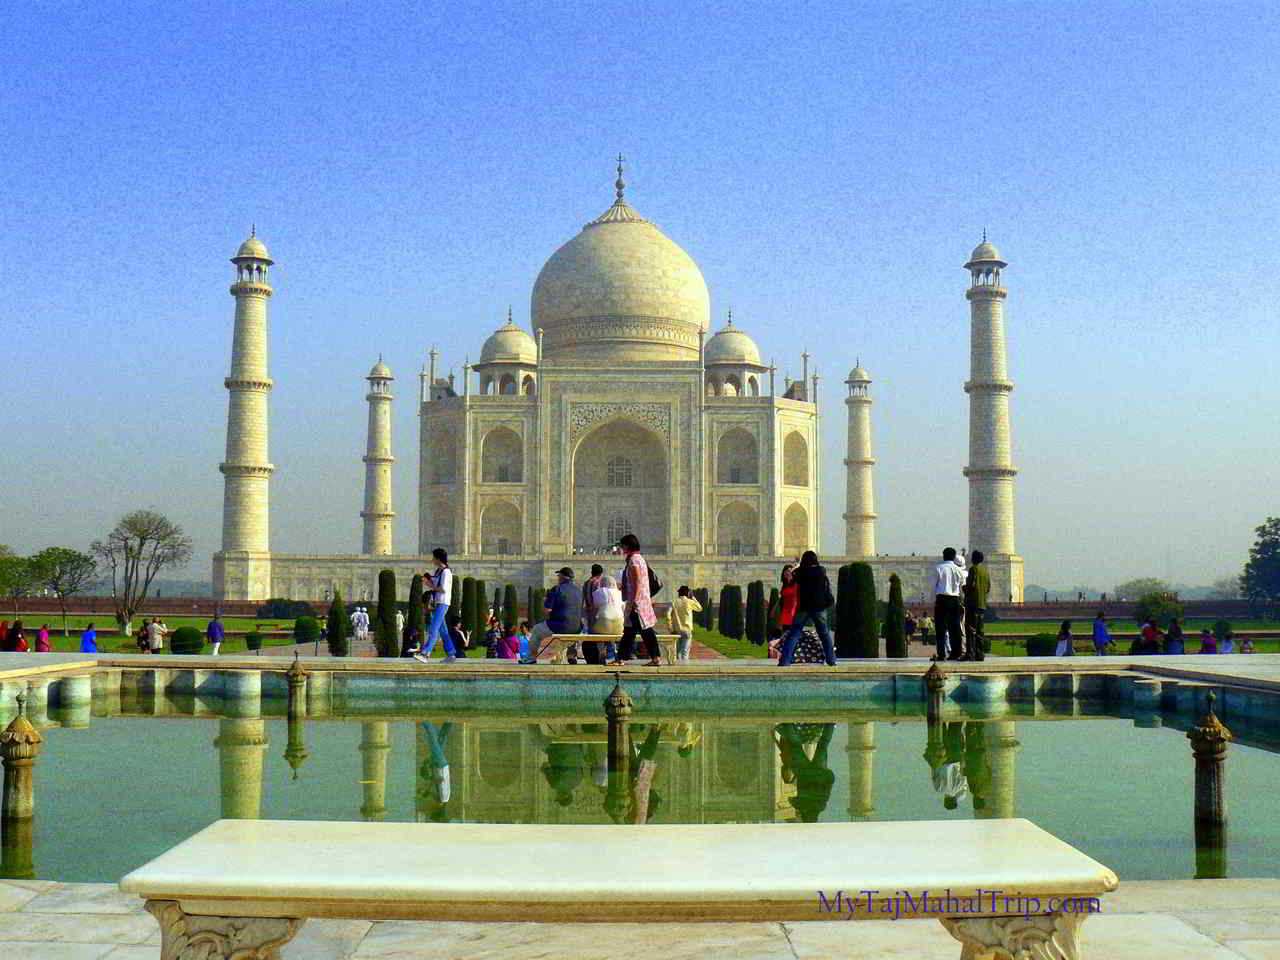 Hd wallpaper taj mahal - Hd Wallpaper Gallery Taj Mahal India Wallpaper